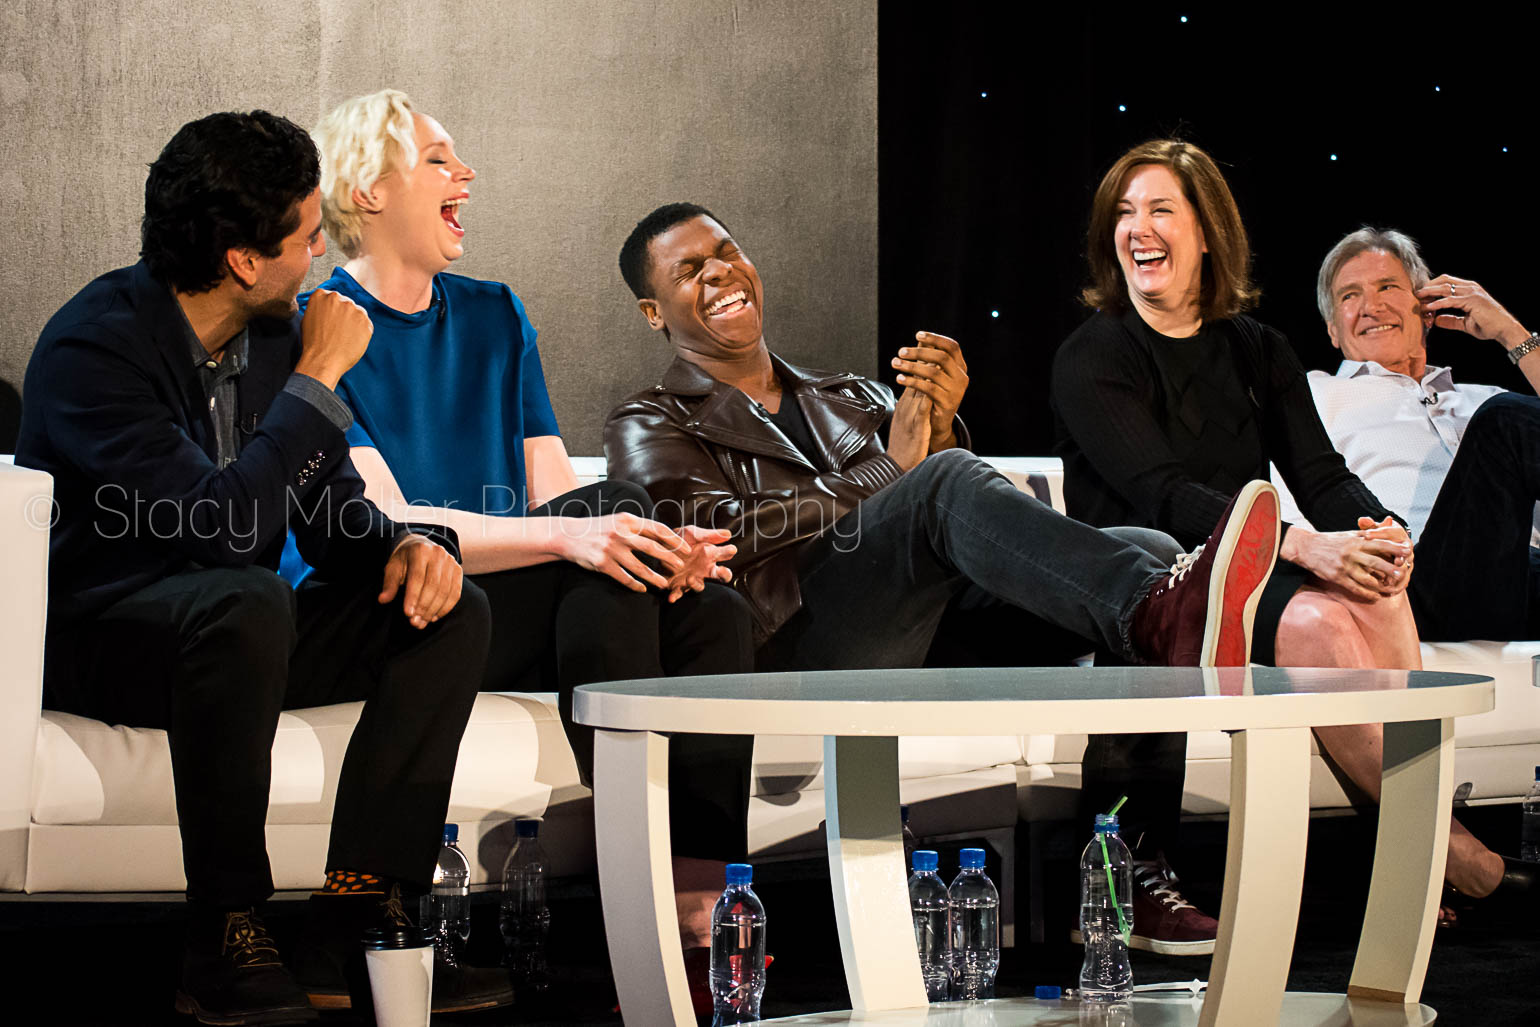 Star Wars: The Force Awakens Press Conference and Cast Interviews with Harrison Ford, John Boyega, Oscar Isaac, Gwendoline Christie, Kathleen Kennedy